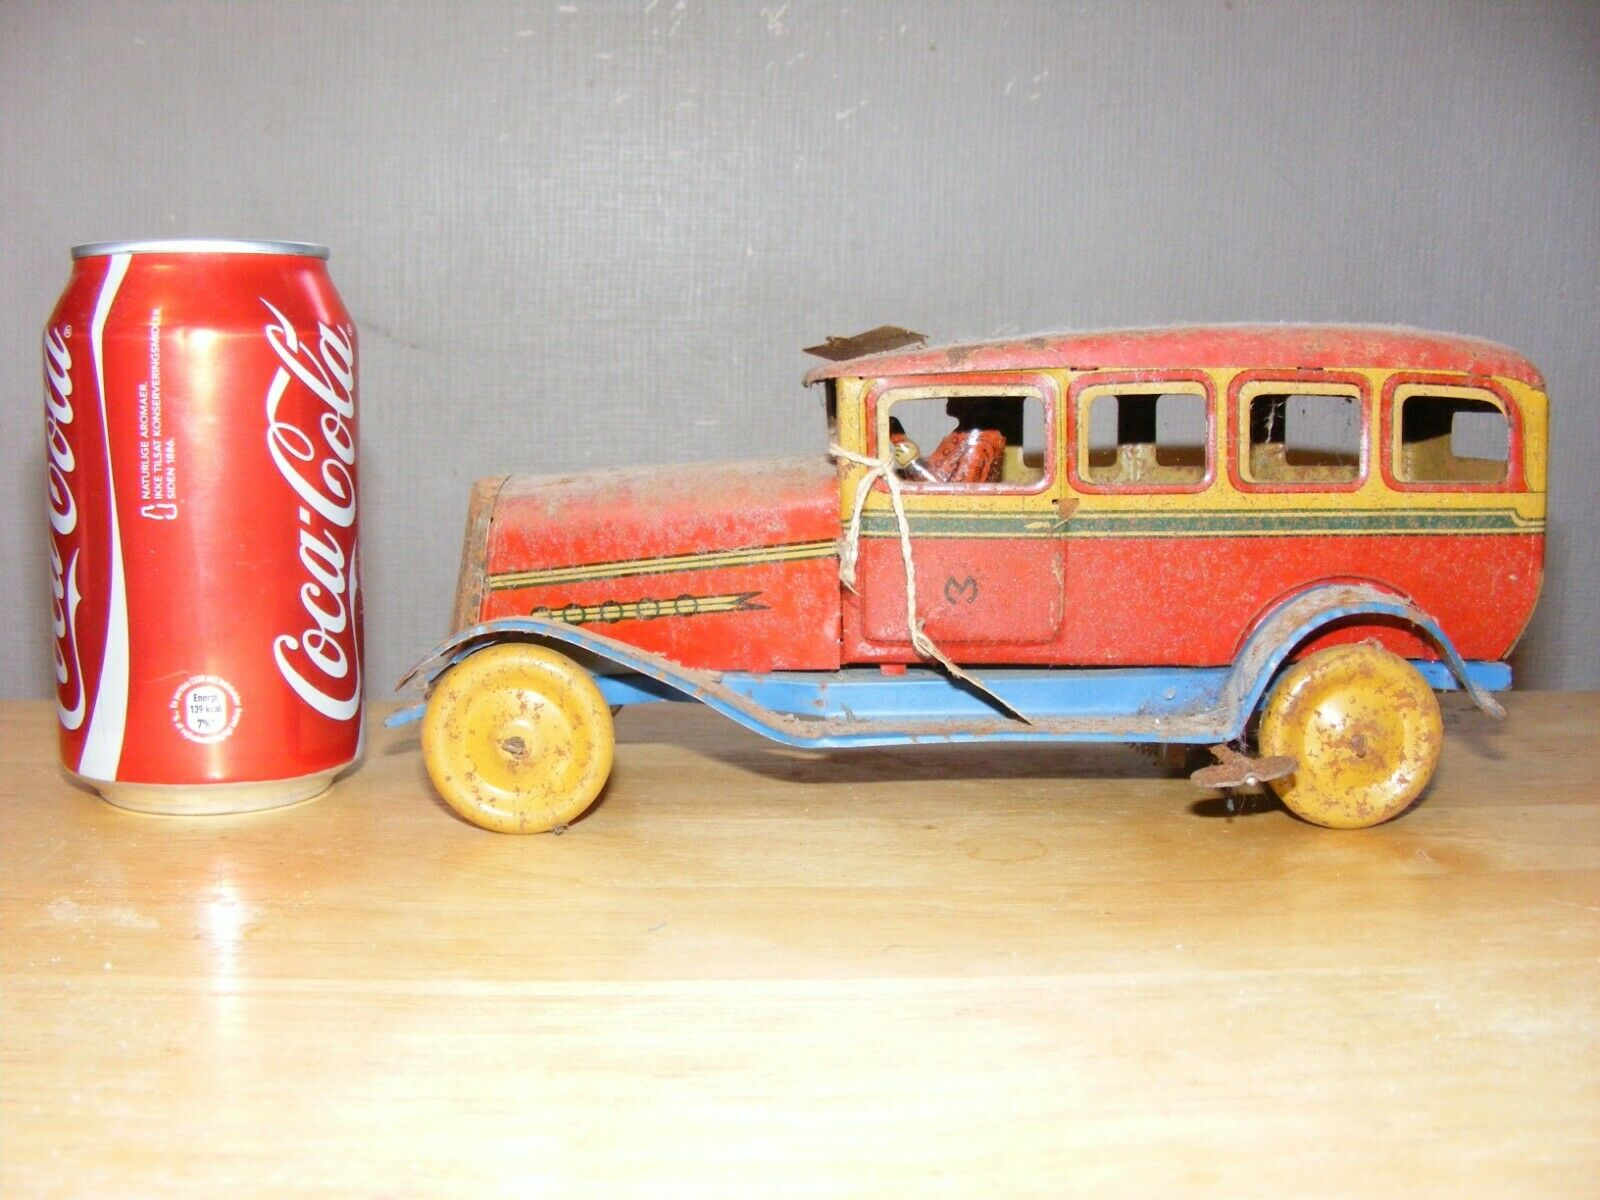 Tin plate toy car,very old,rare.wind-up,clockwork,as found,vintage.antique,works